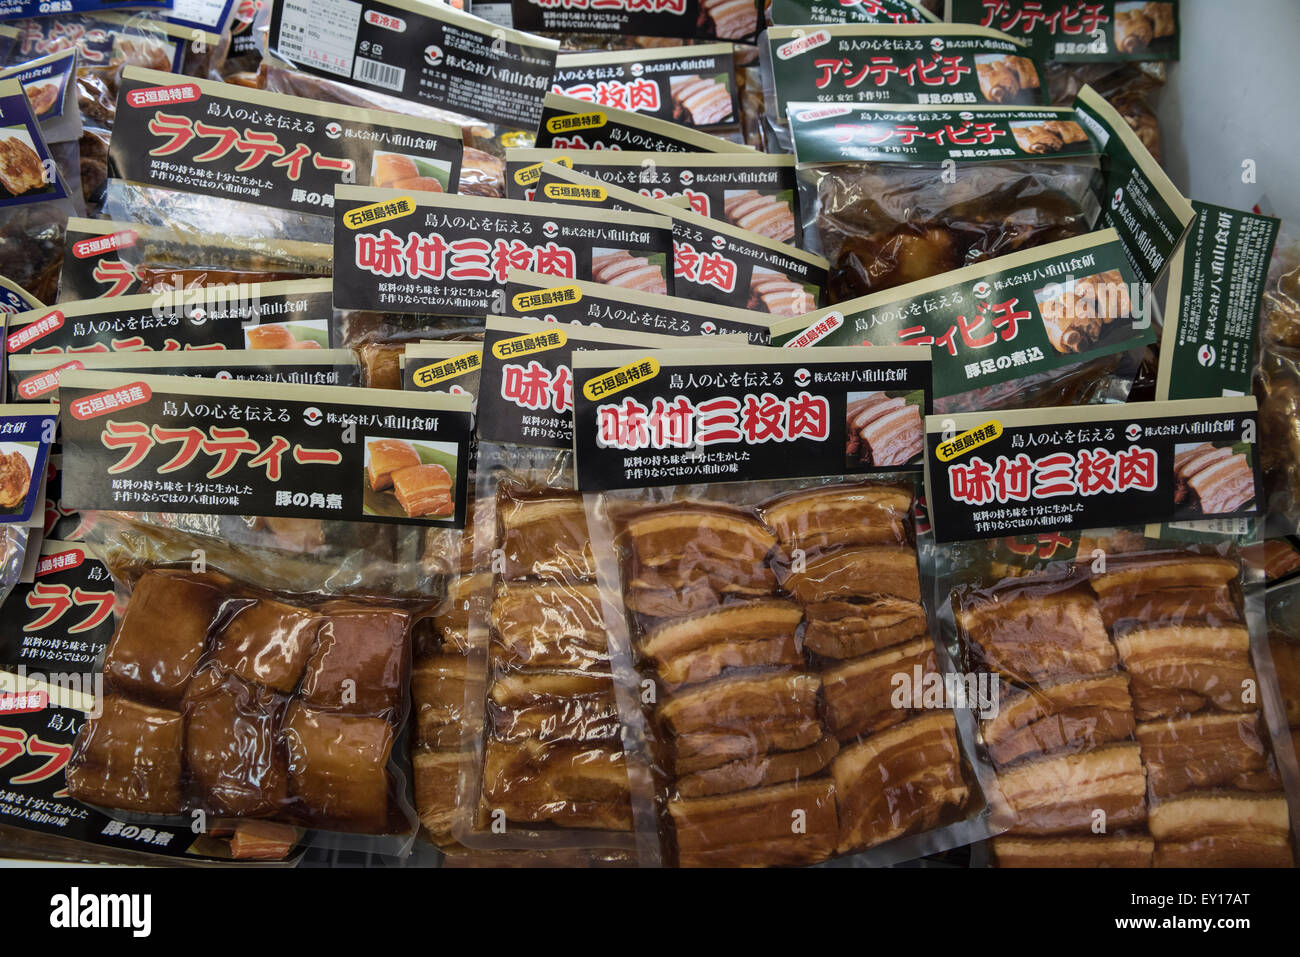 [Image: okinawan-agu-pork-products-on-a-market-s...EY17AT.jpg]